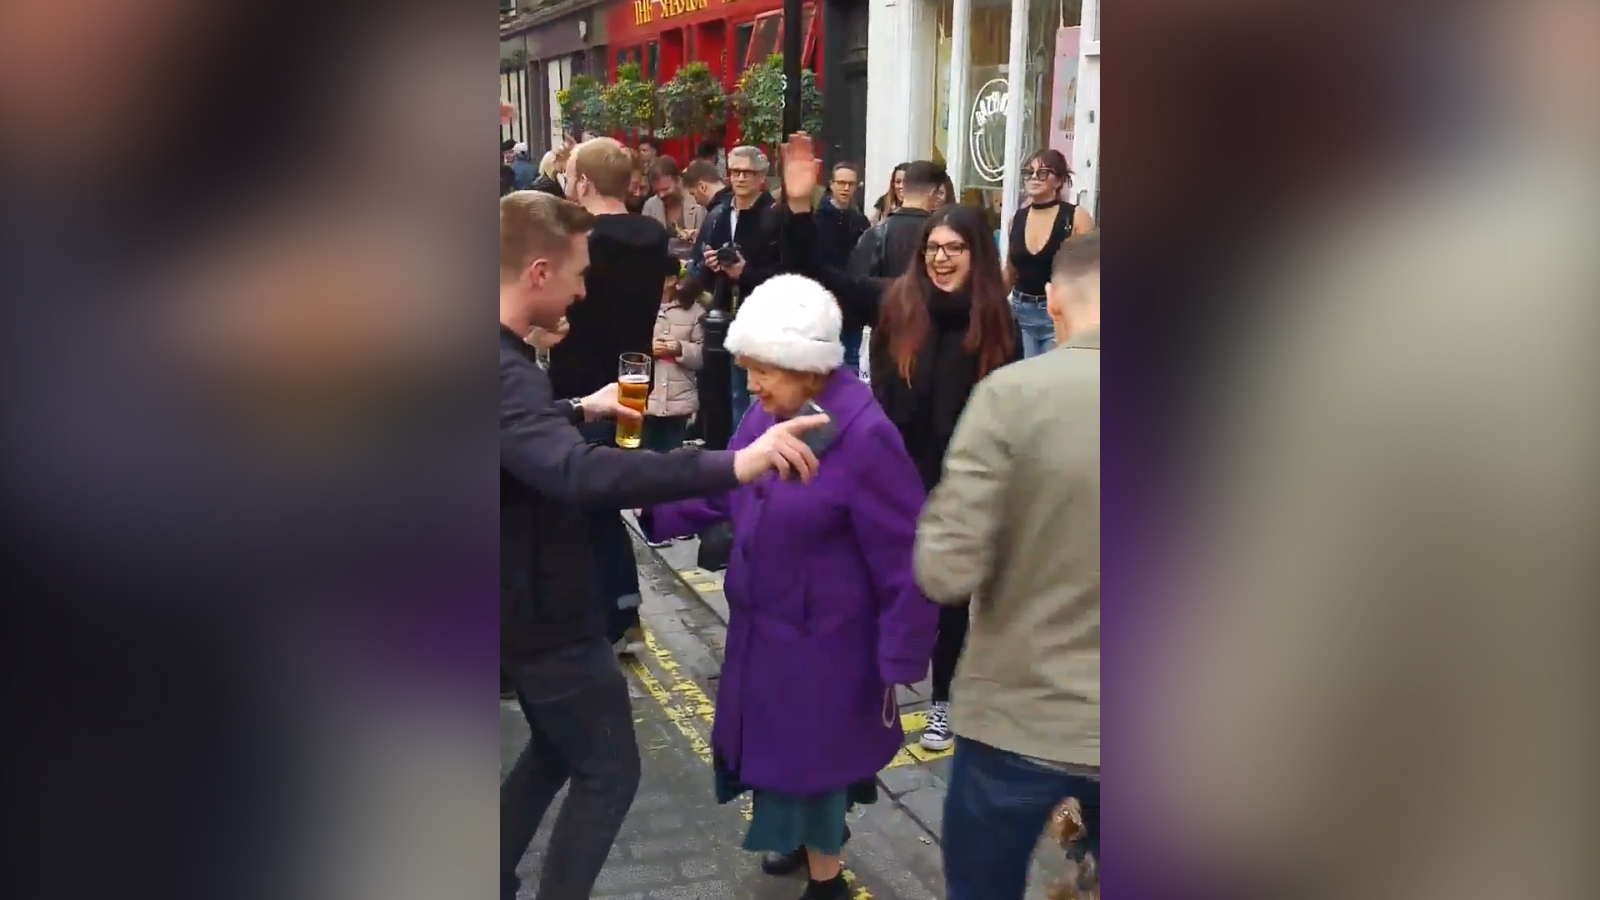 Elderly woman shows age doesn't matter as she shows off her dance moves in Soho